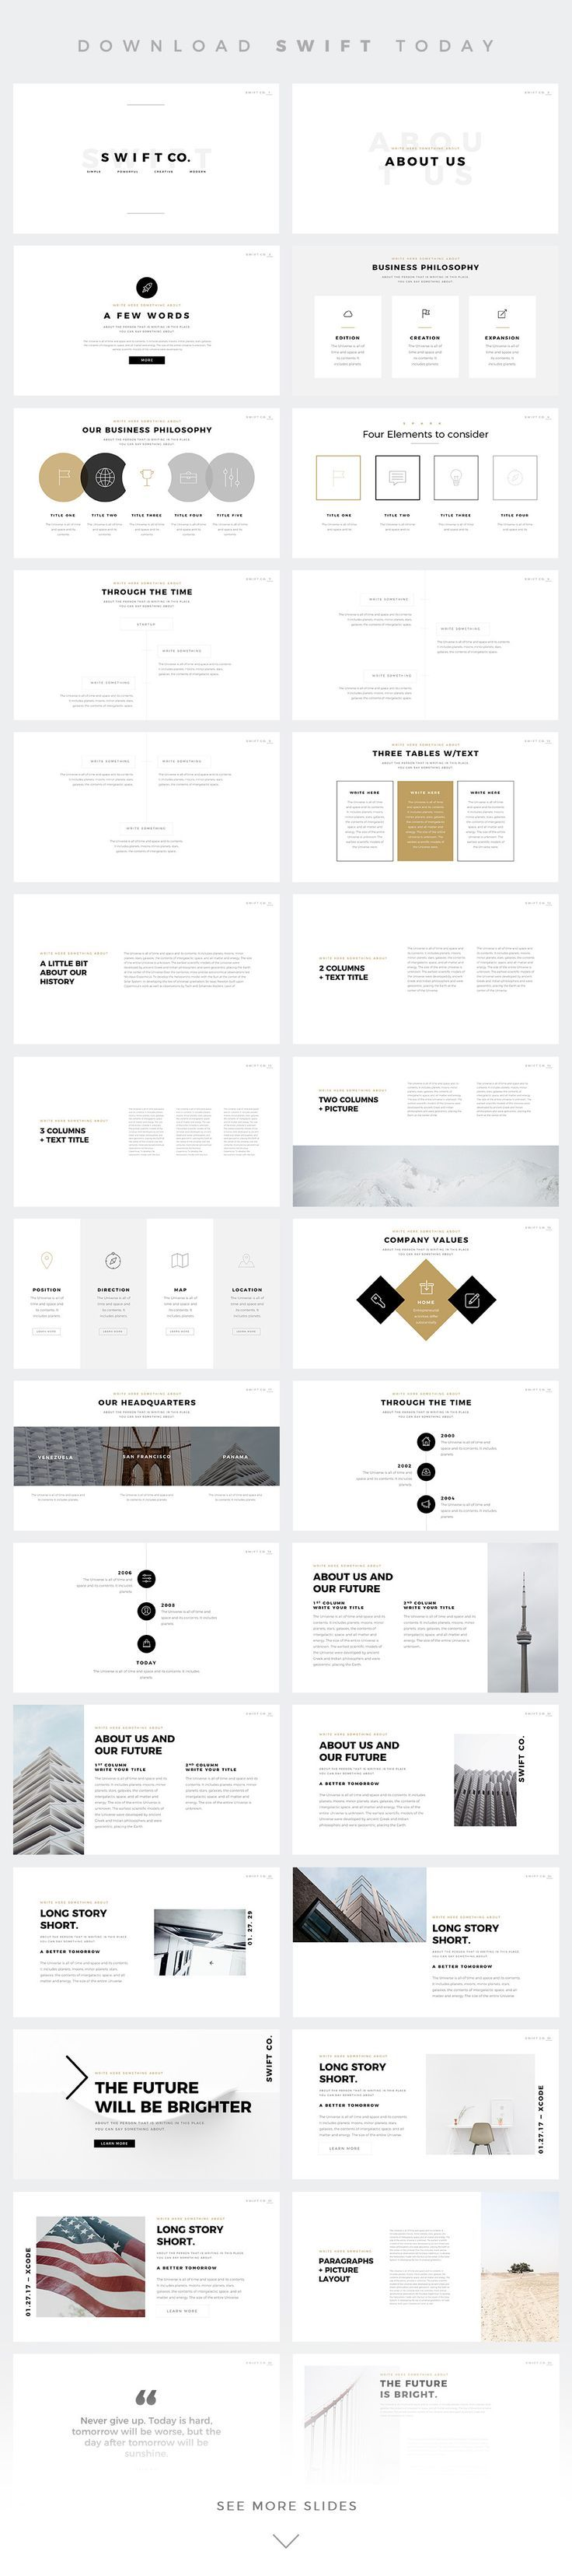 10 best Power Point templates images on Pinterest | Keynote template ...